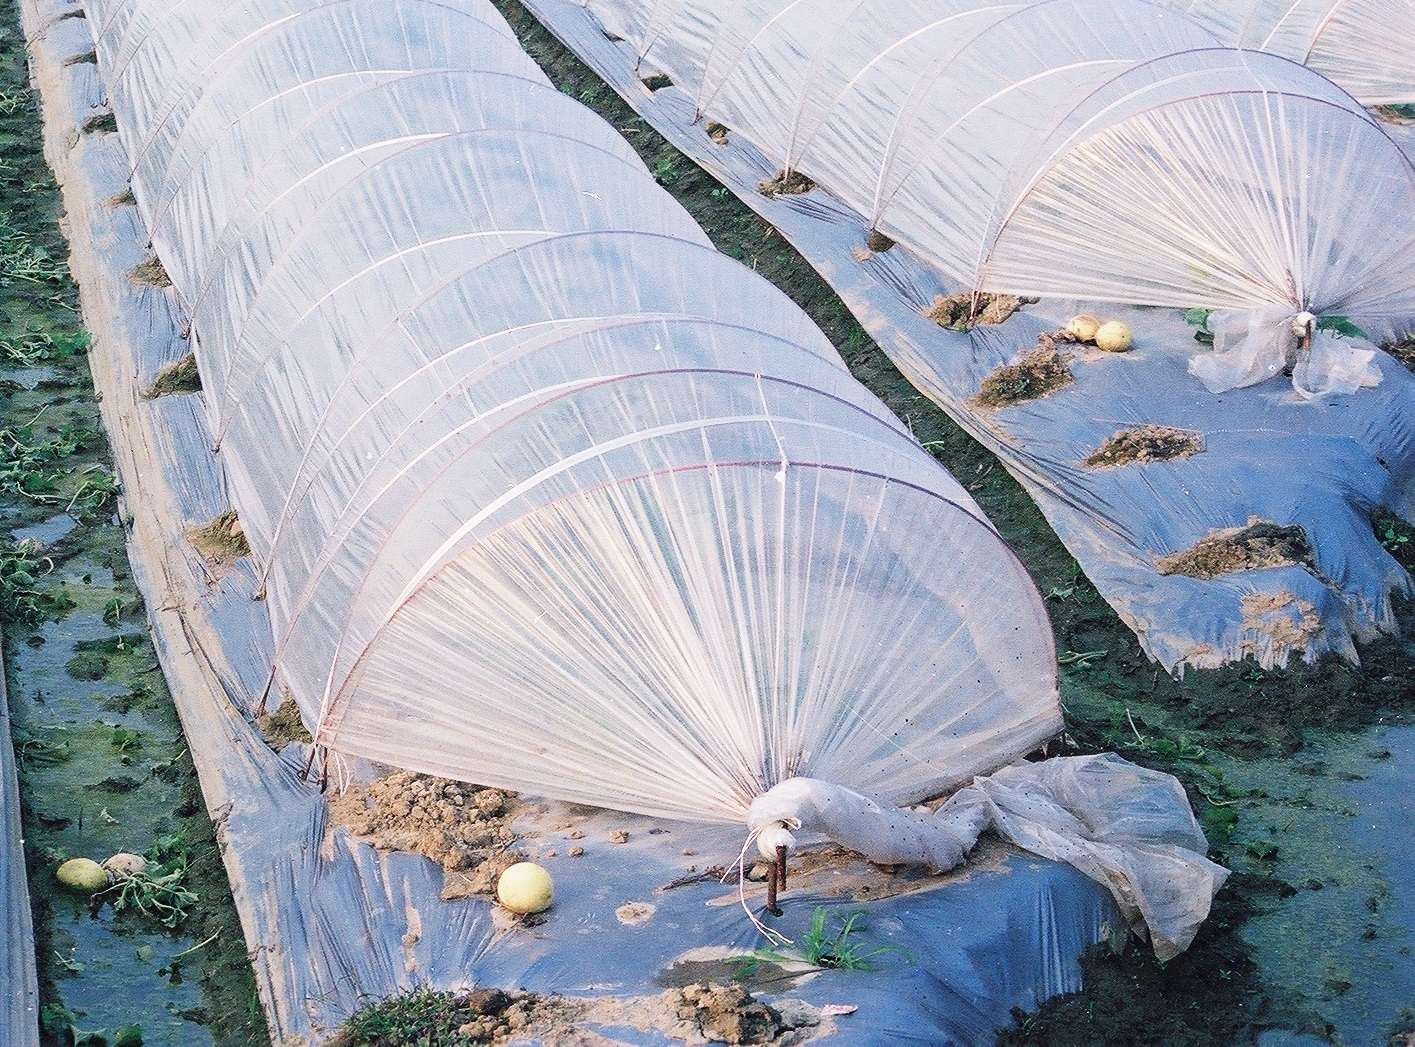 Taiwan Small Tunnel Greenhouse Film for building a easy low